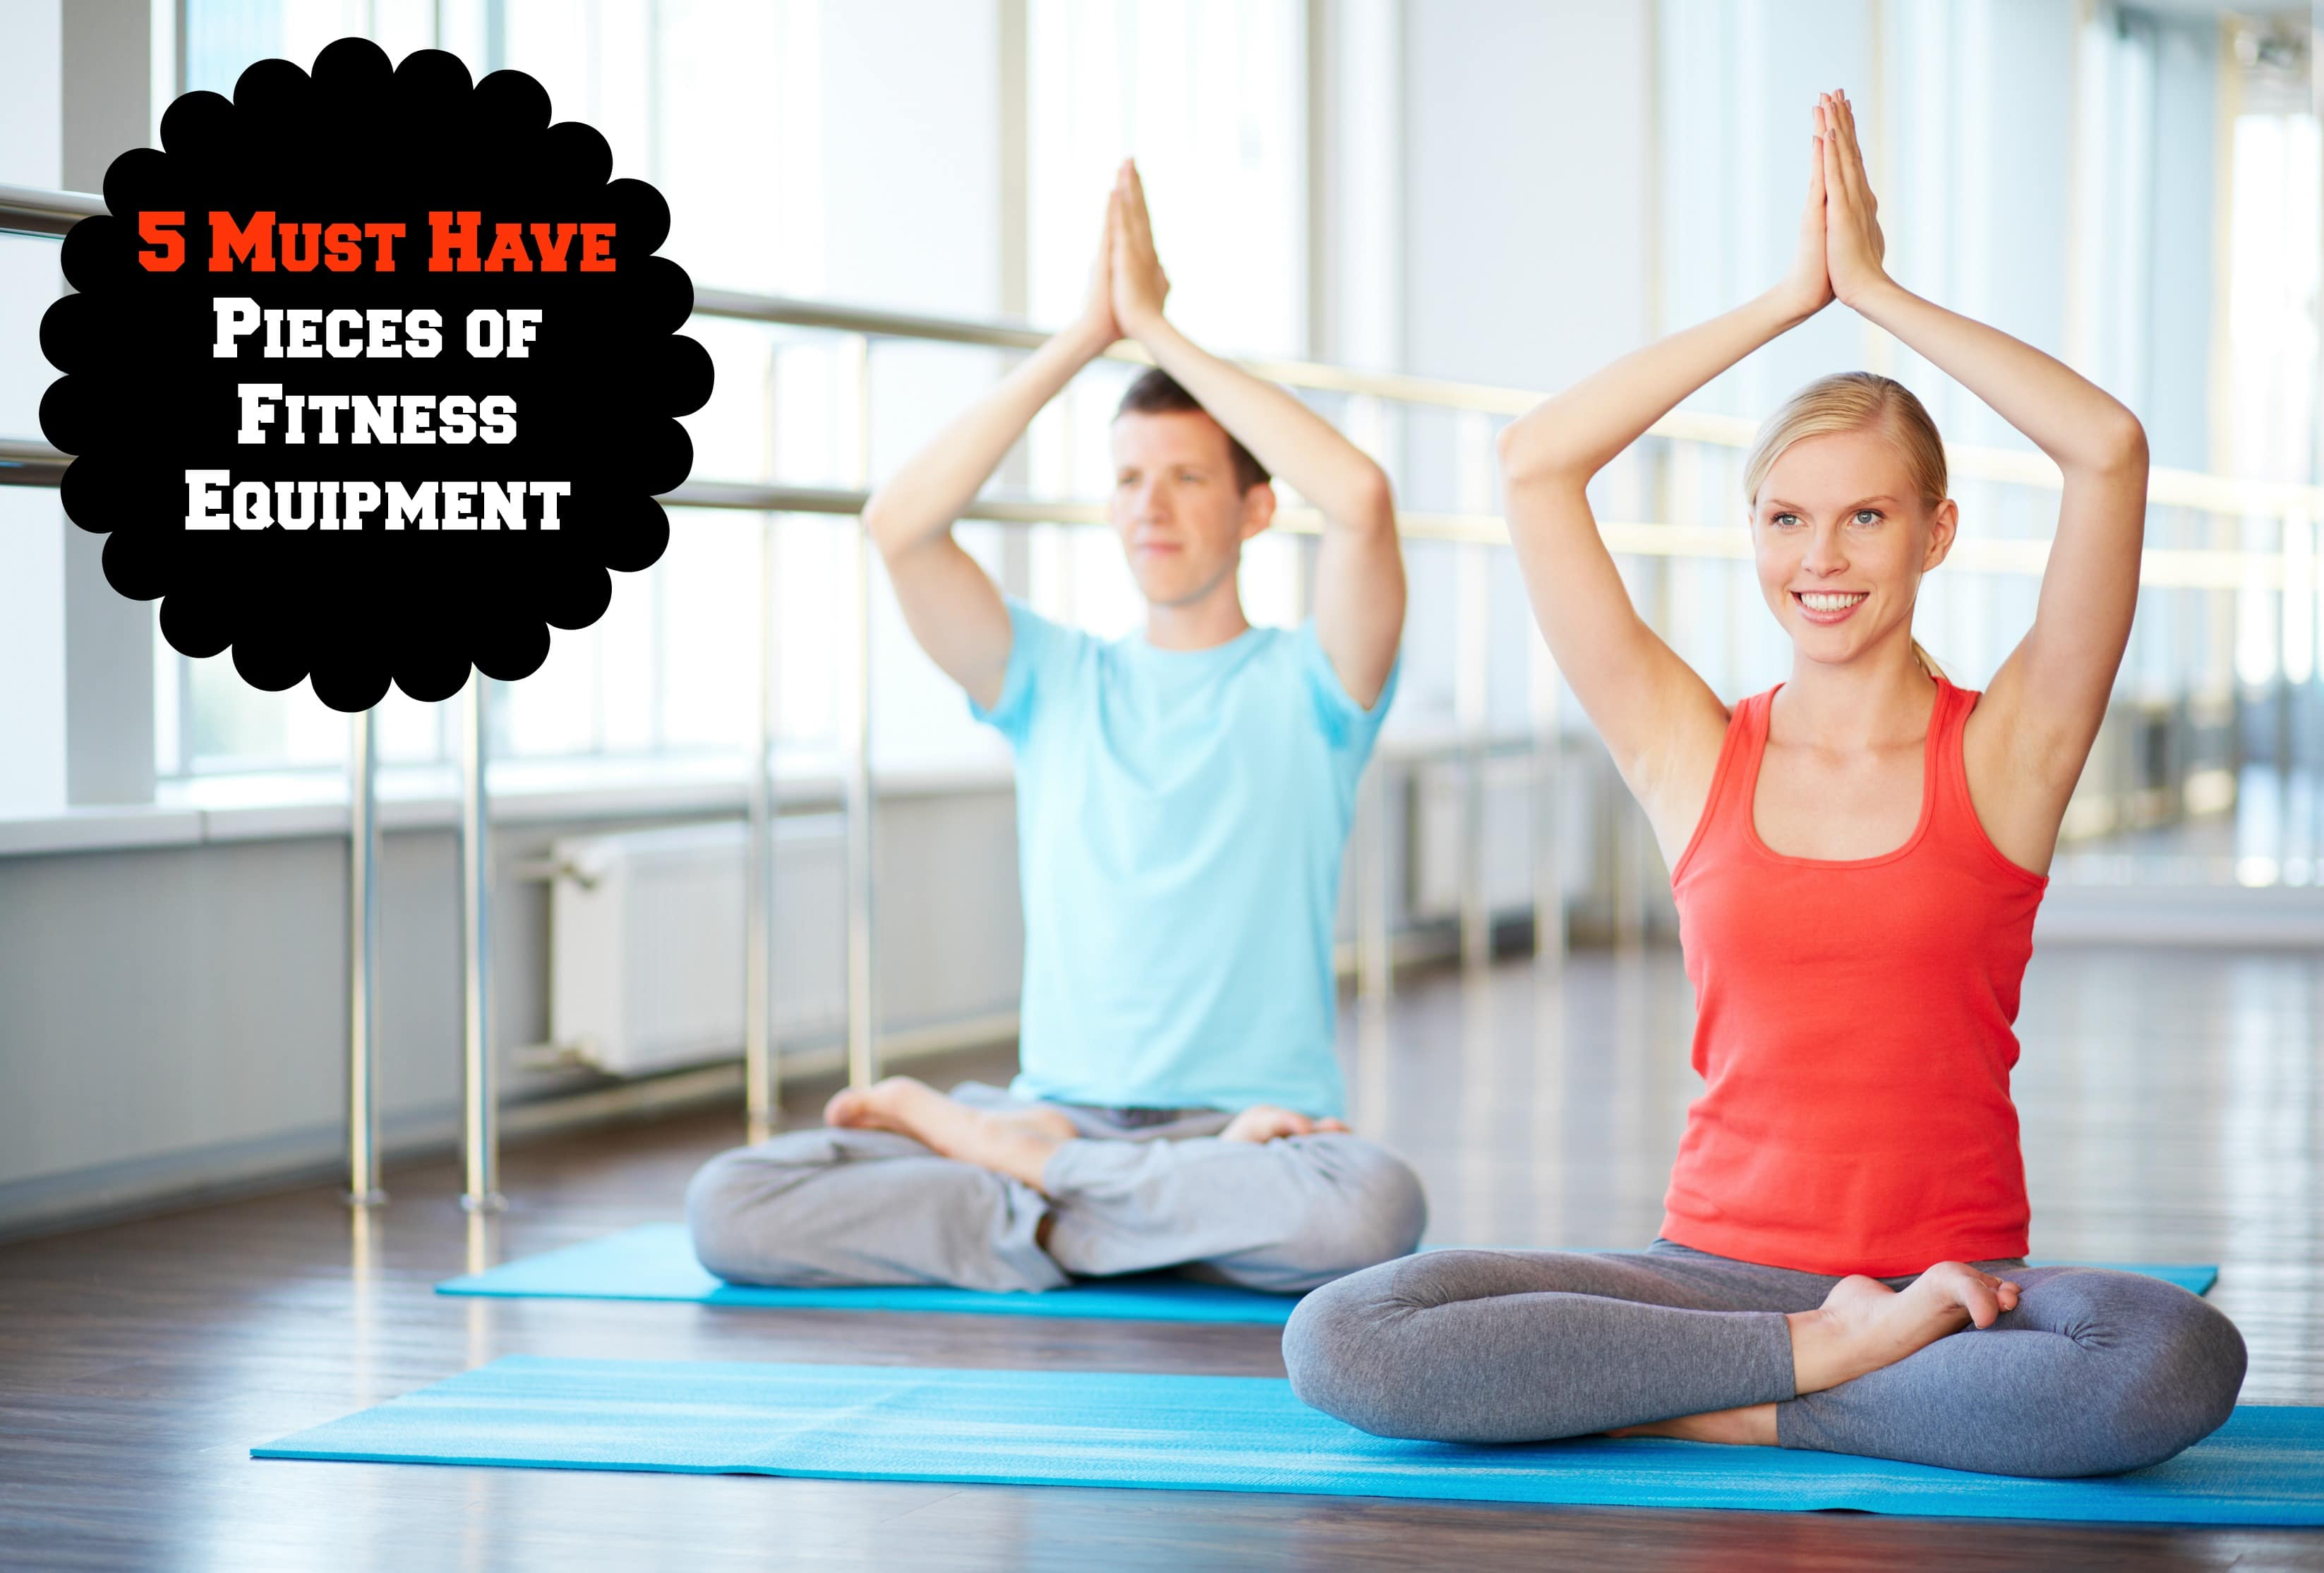 5 must have pieces of exercise equipment